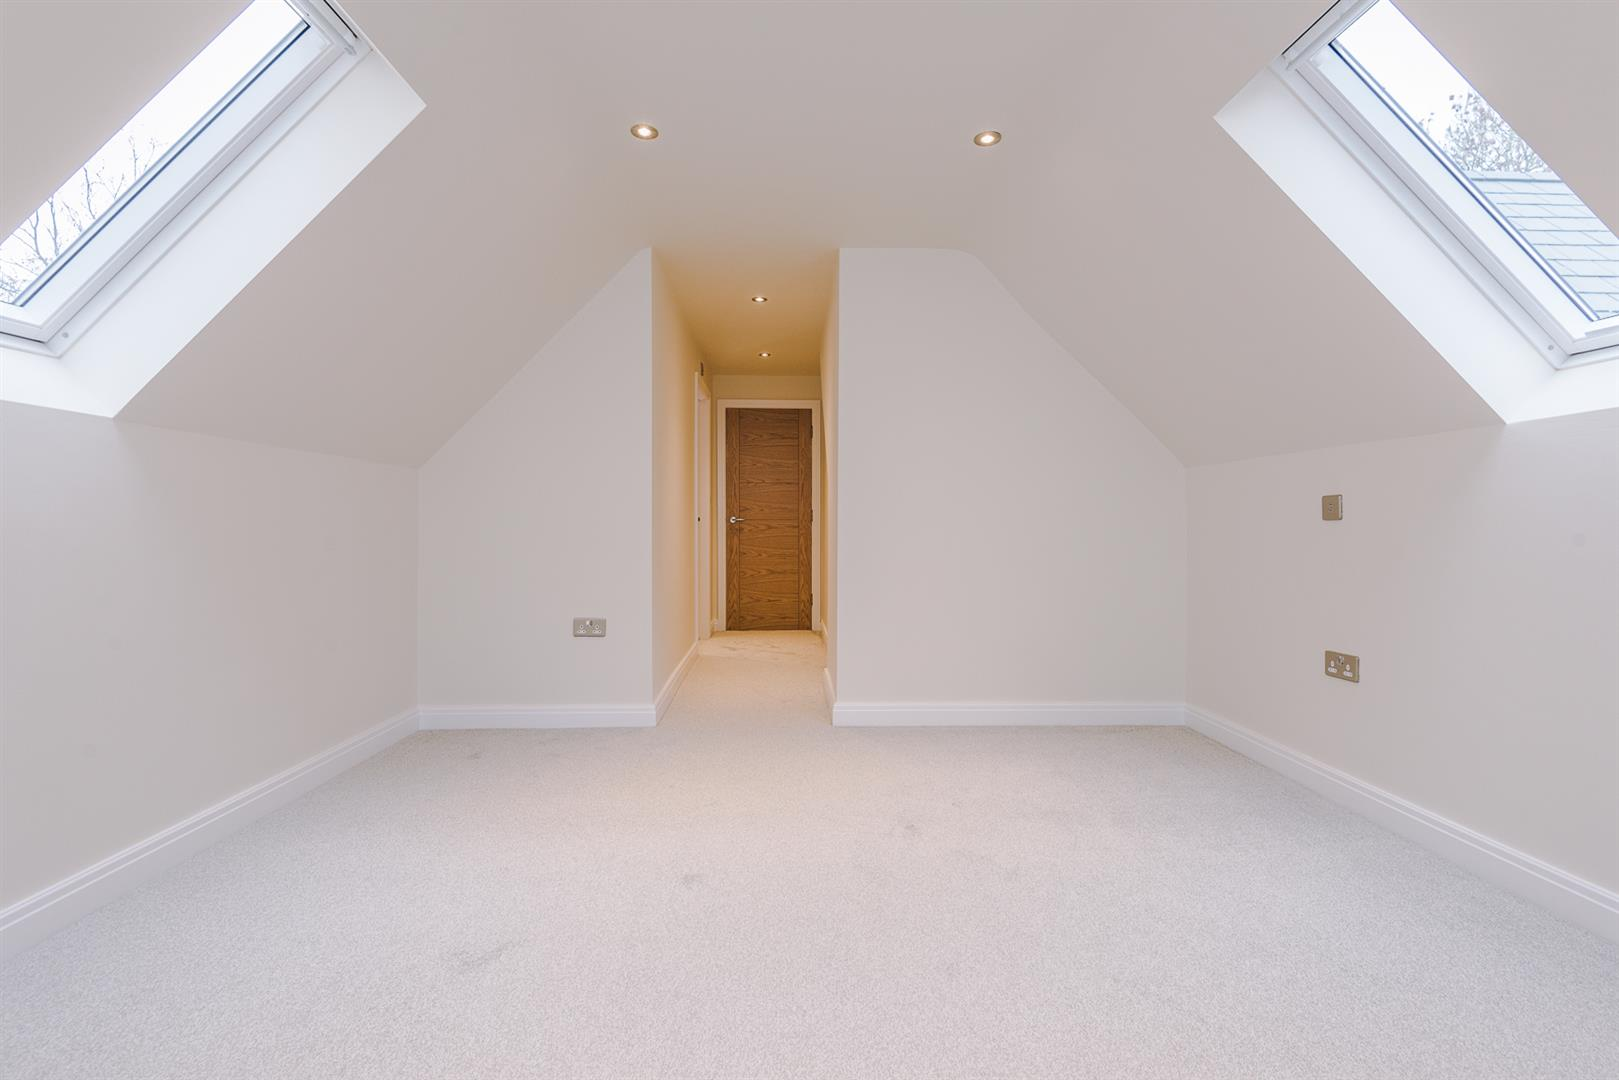 5 Bedroom House For Sale Image 36